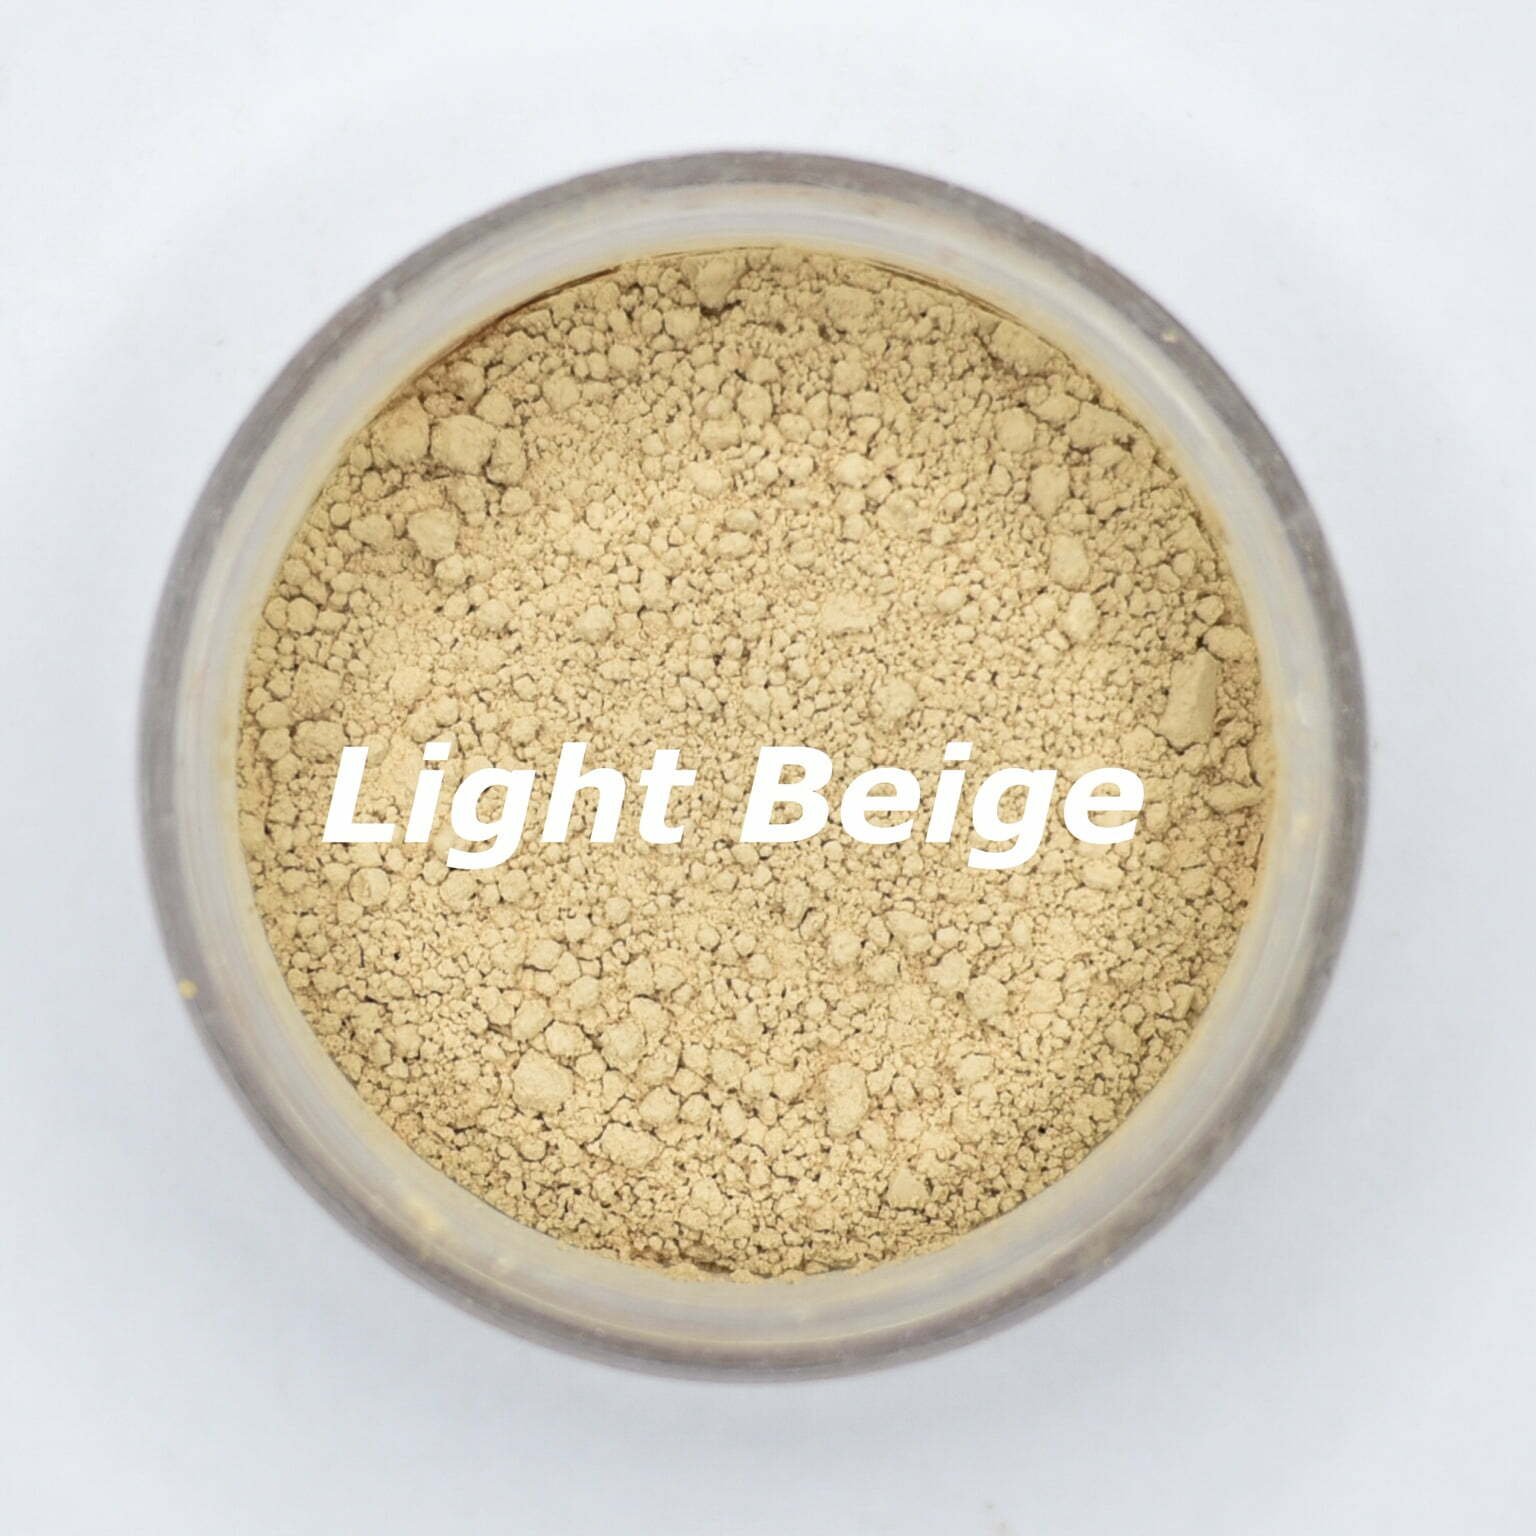 light beige foundation natural